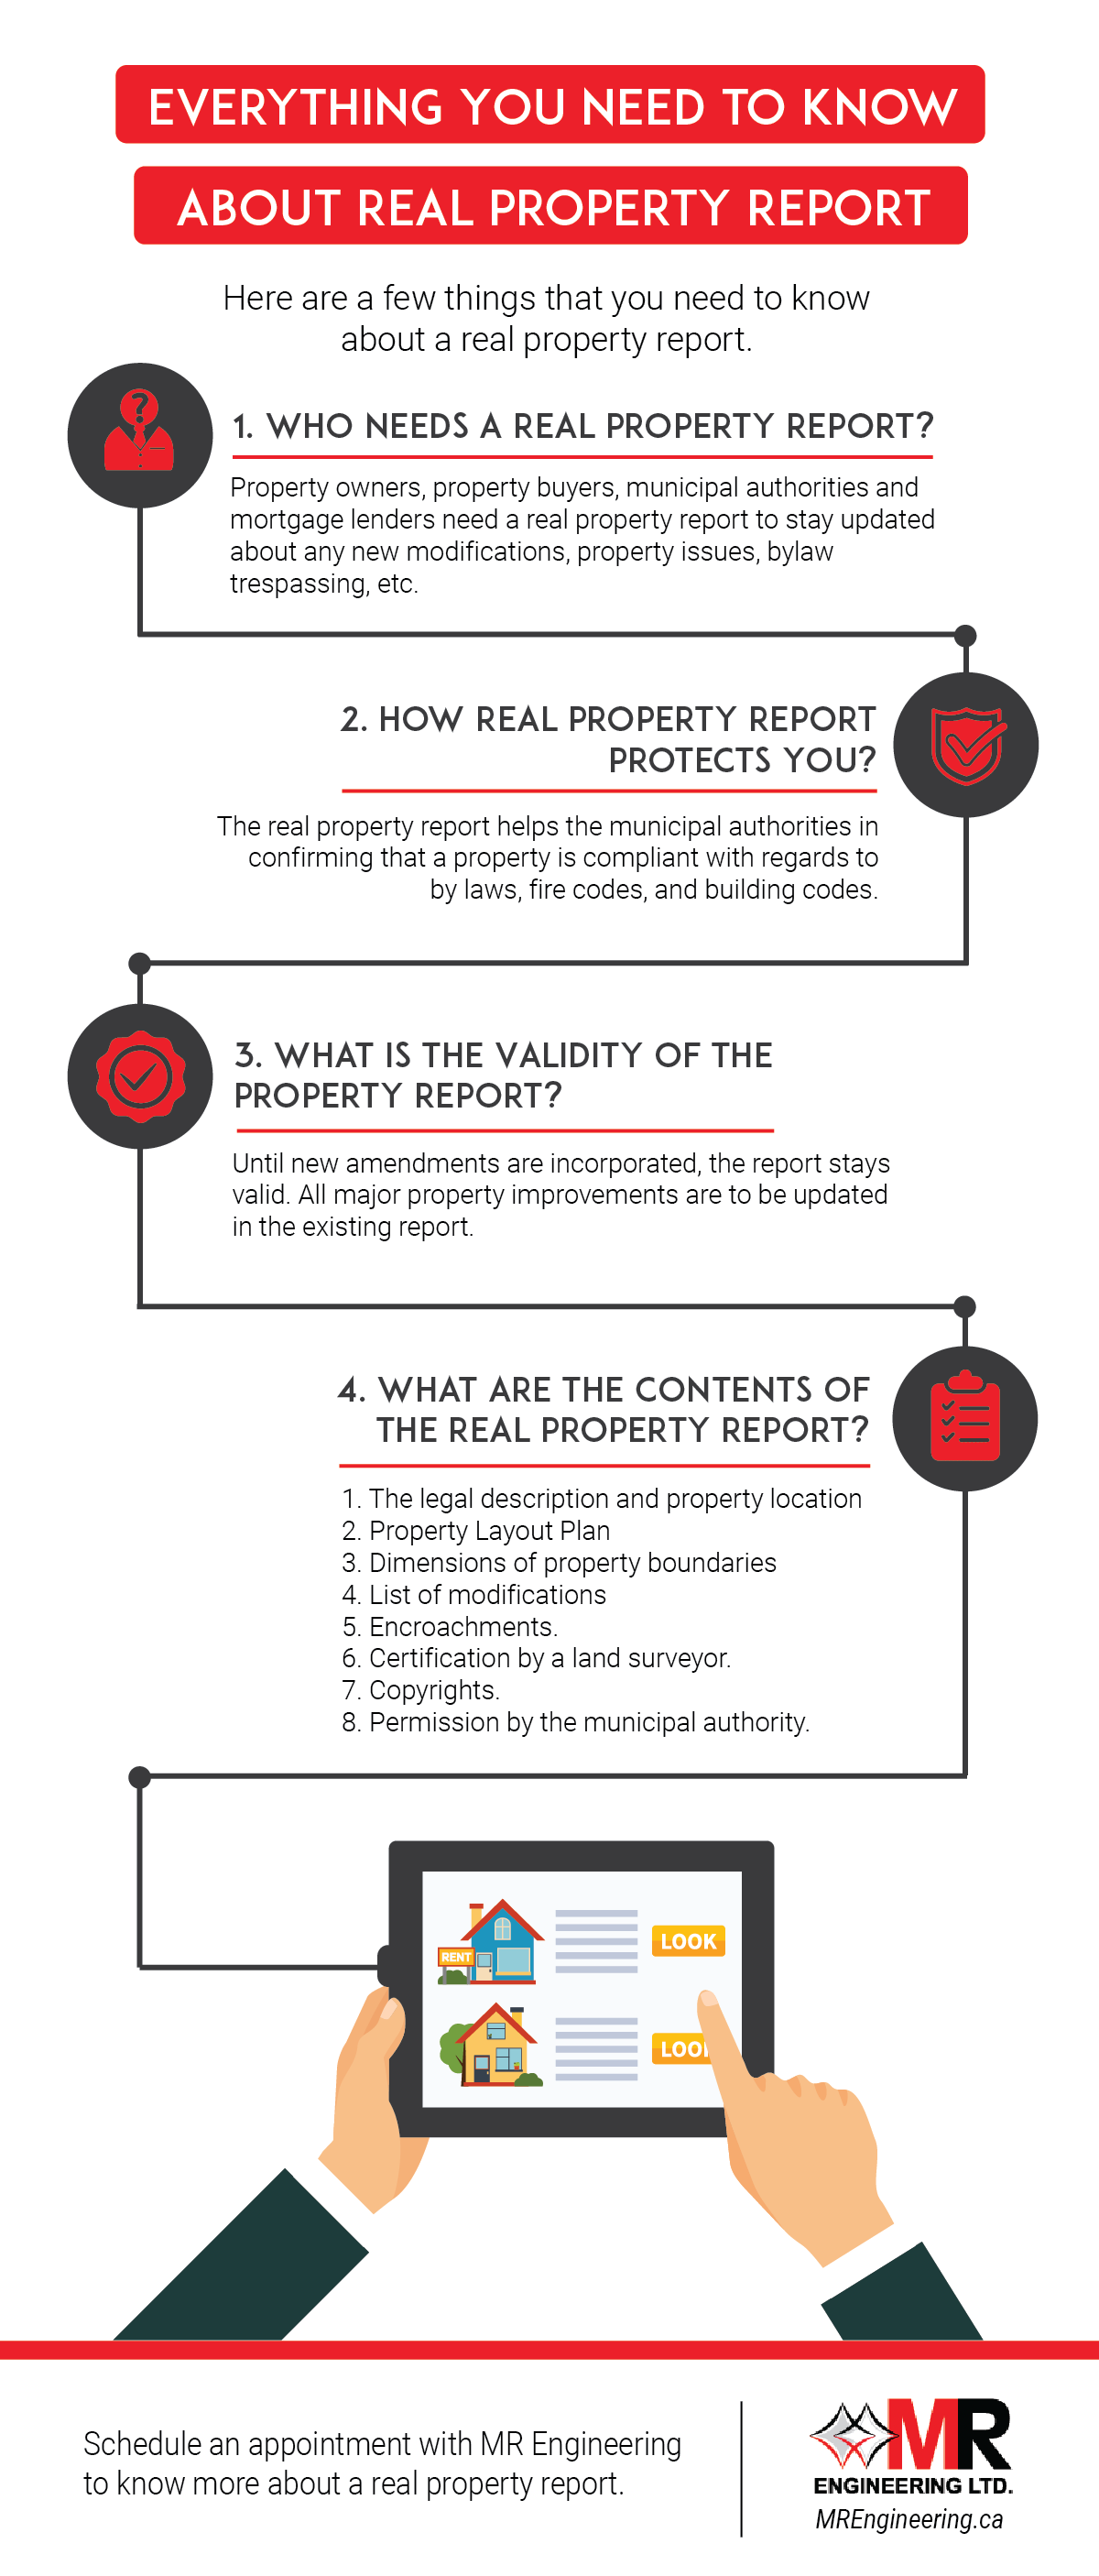 Need To Know About Real Property Report